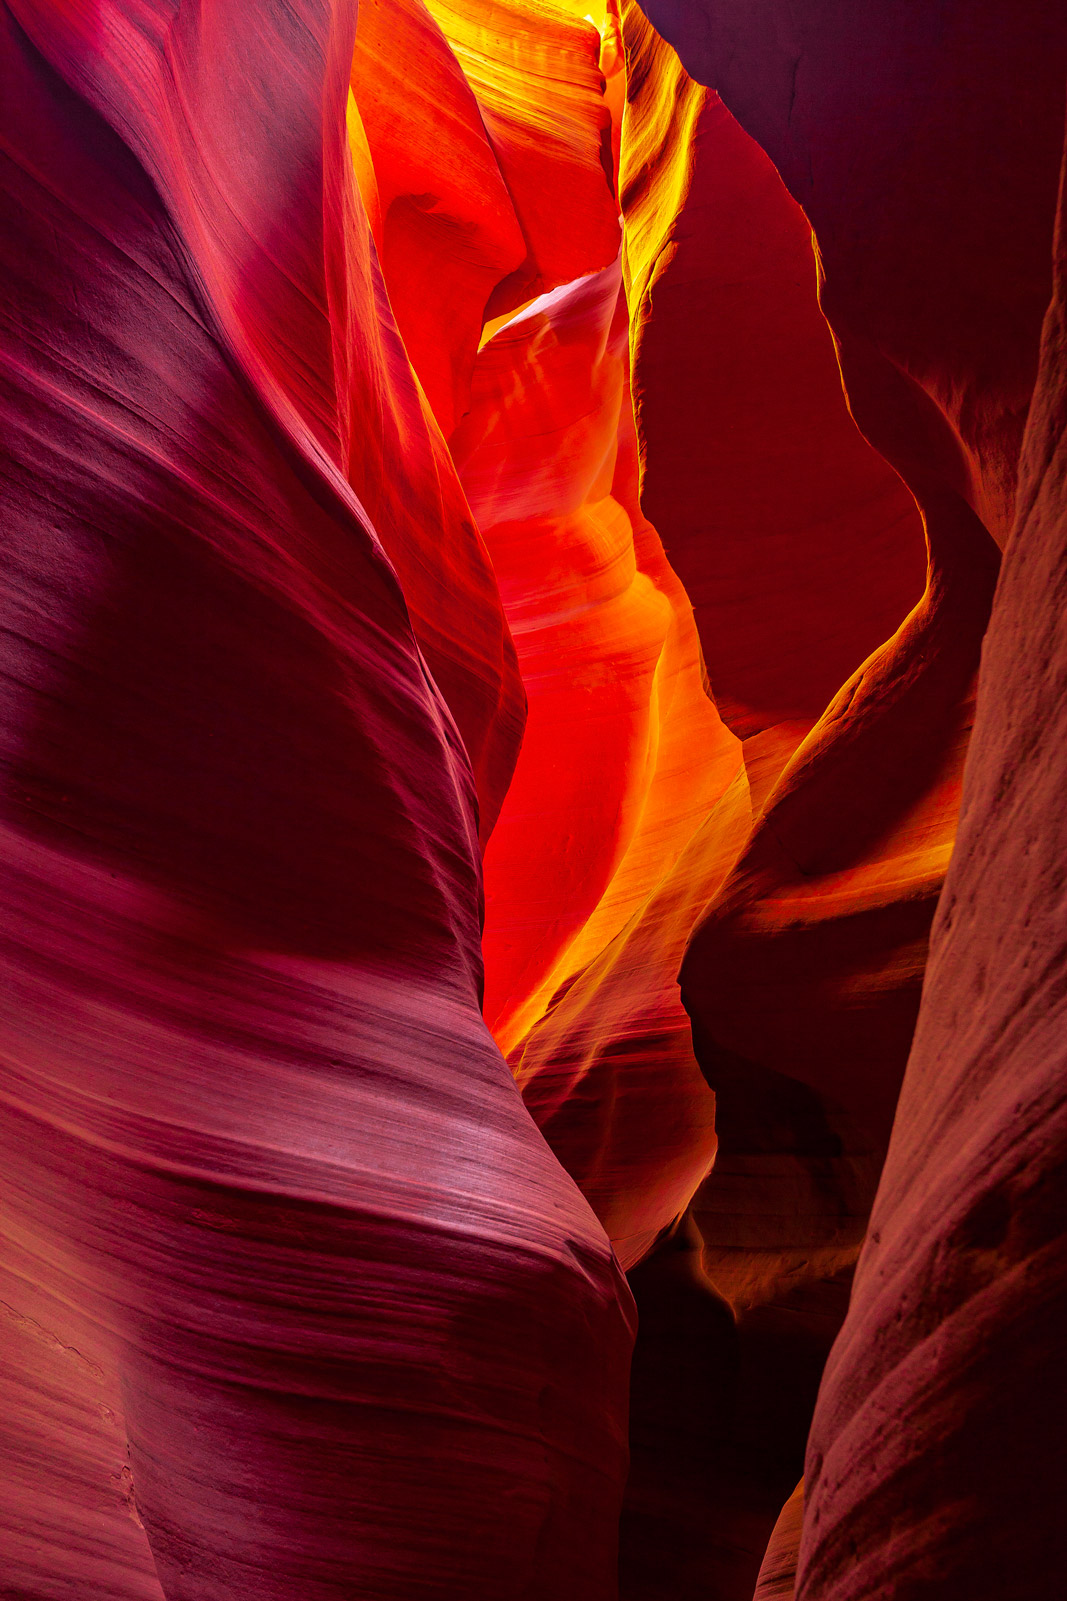 Arizona, Slot Canyon, Canyon, Antelope Canyon, limited edition, photograph, fine art, landscape, photo